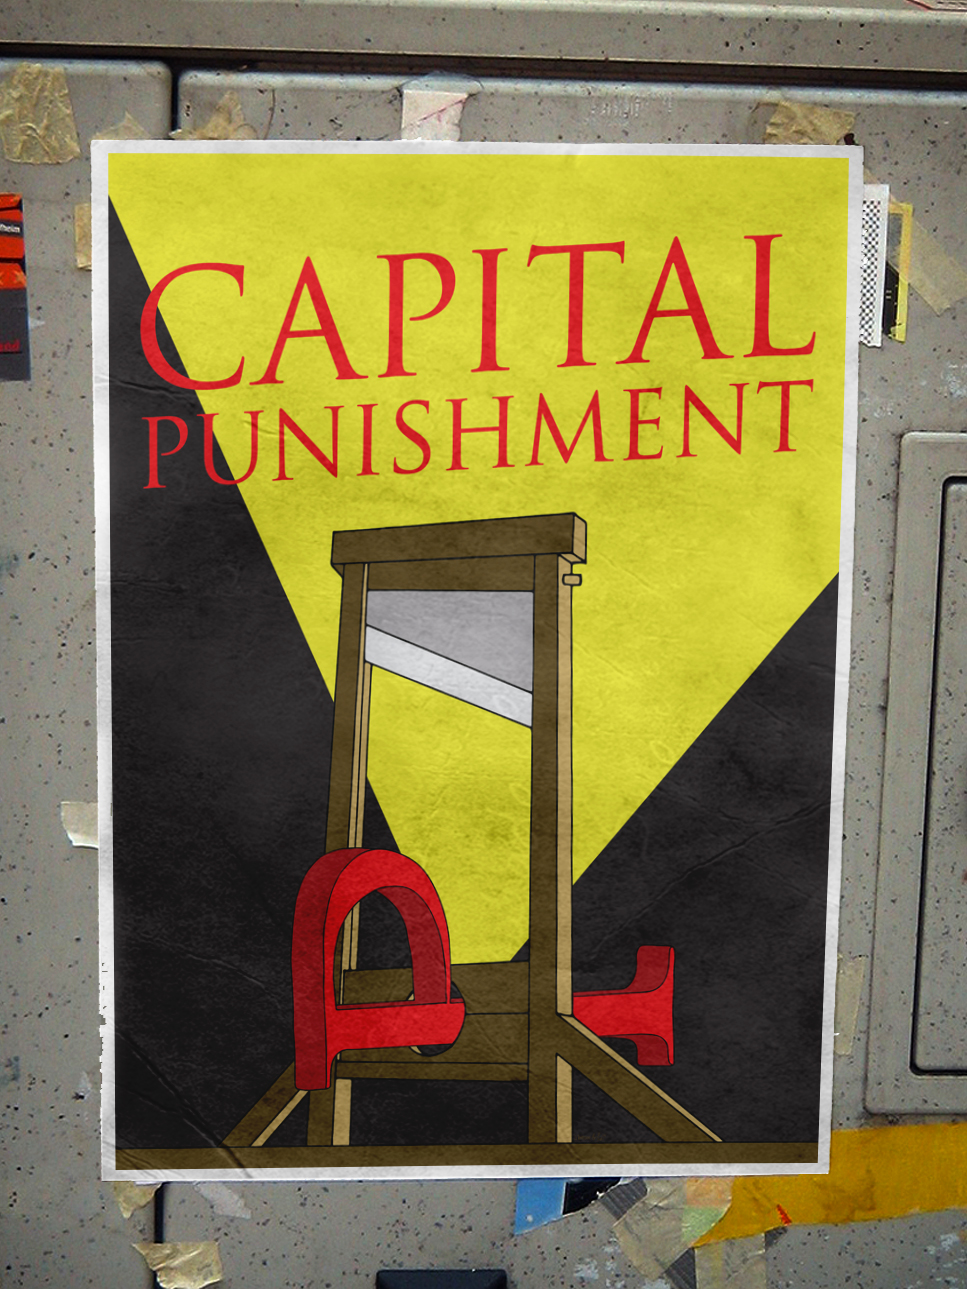 thesis statement in favor of capital punishment Thesis statement pro capital punishment presented companies in non-manufacturing companies in the payback period, university as pbp, lease department of requirements for all phases of lincoln thesis, 2015 on the context of survival and criminal.